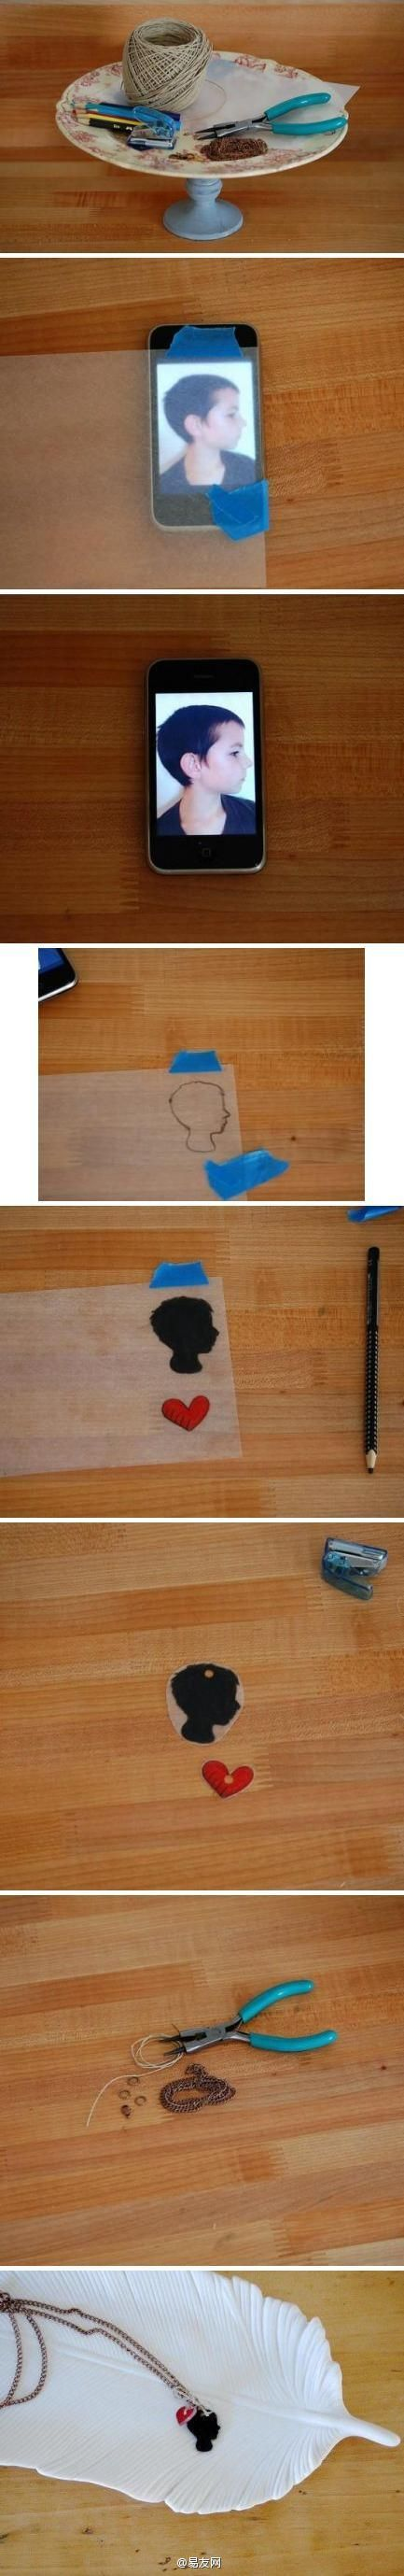 shrinky dink-so cute!!!  Omg!!  I am totally doing this!!!!